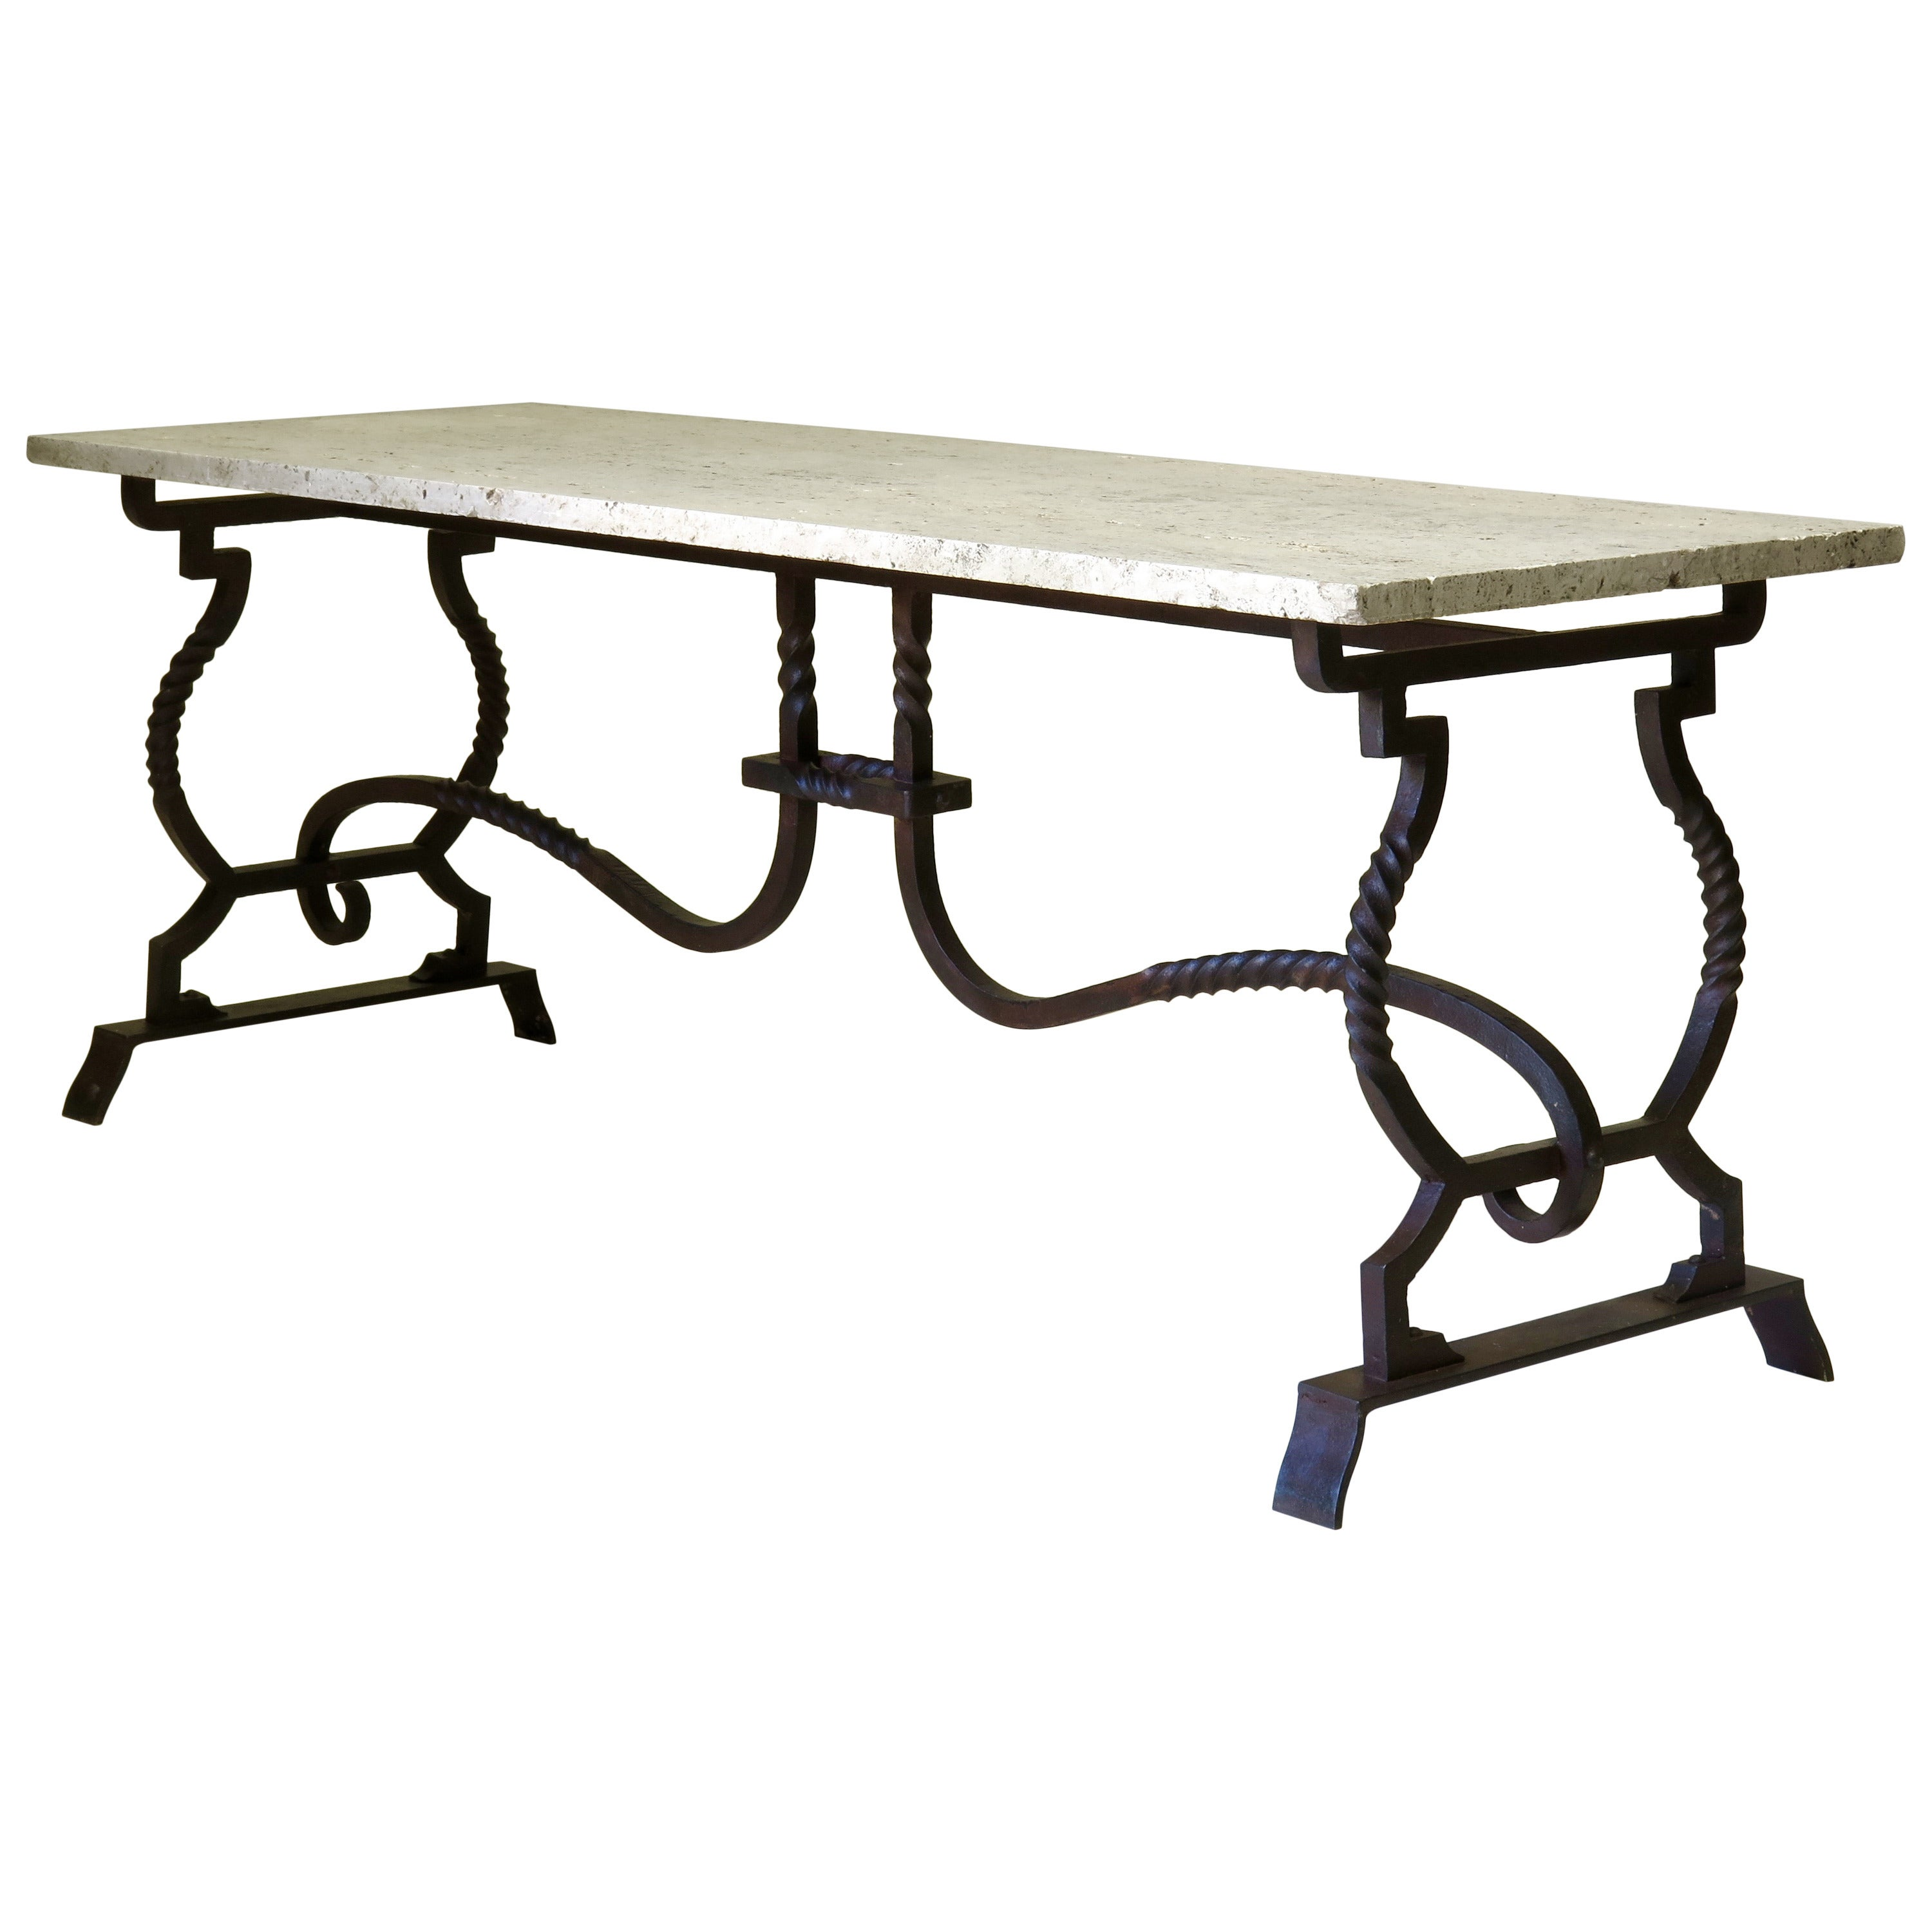 Wrought Iron and Travertine Coffee Table, France, 1940s-1950s